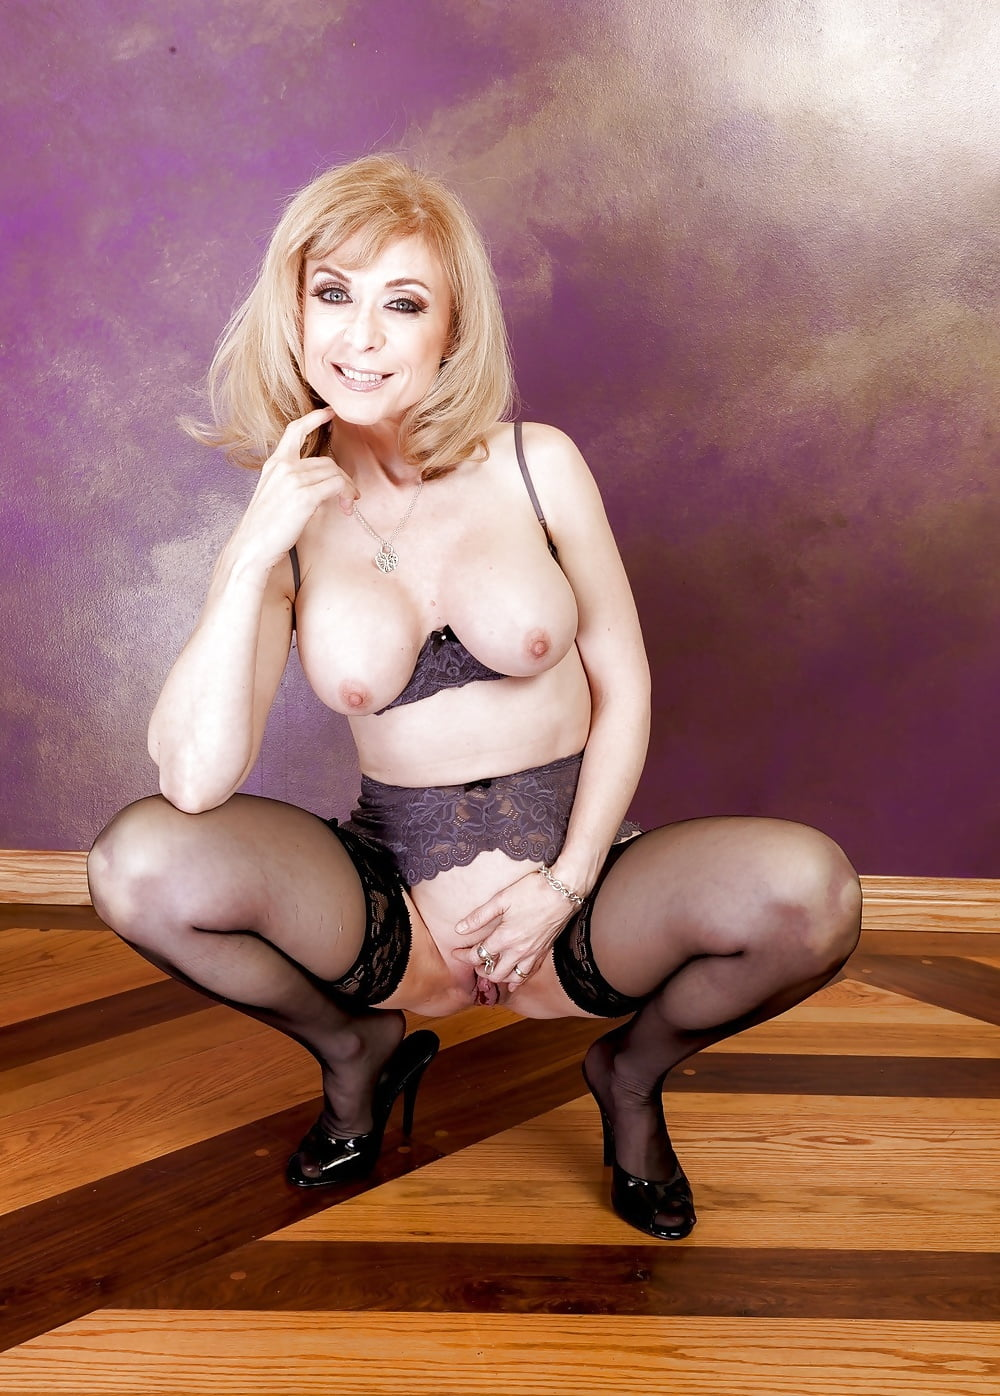 Nina hartley completely nude, fuck my wifes friend